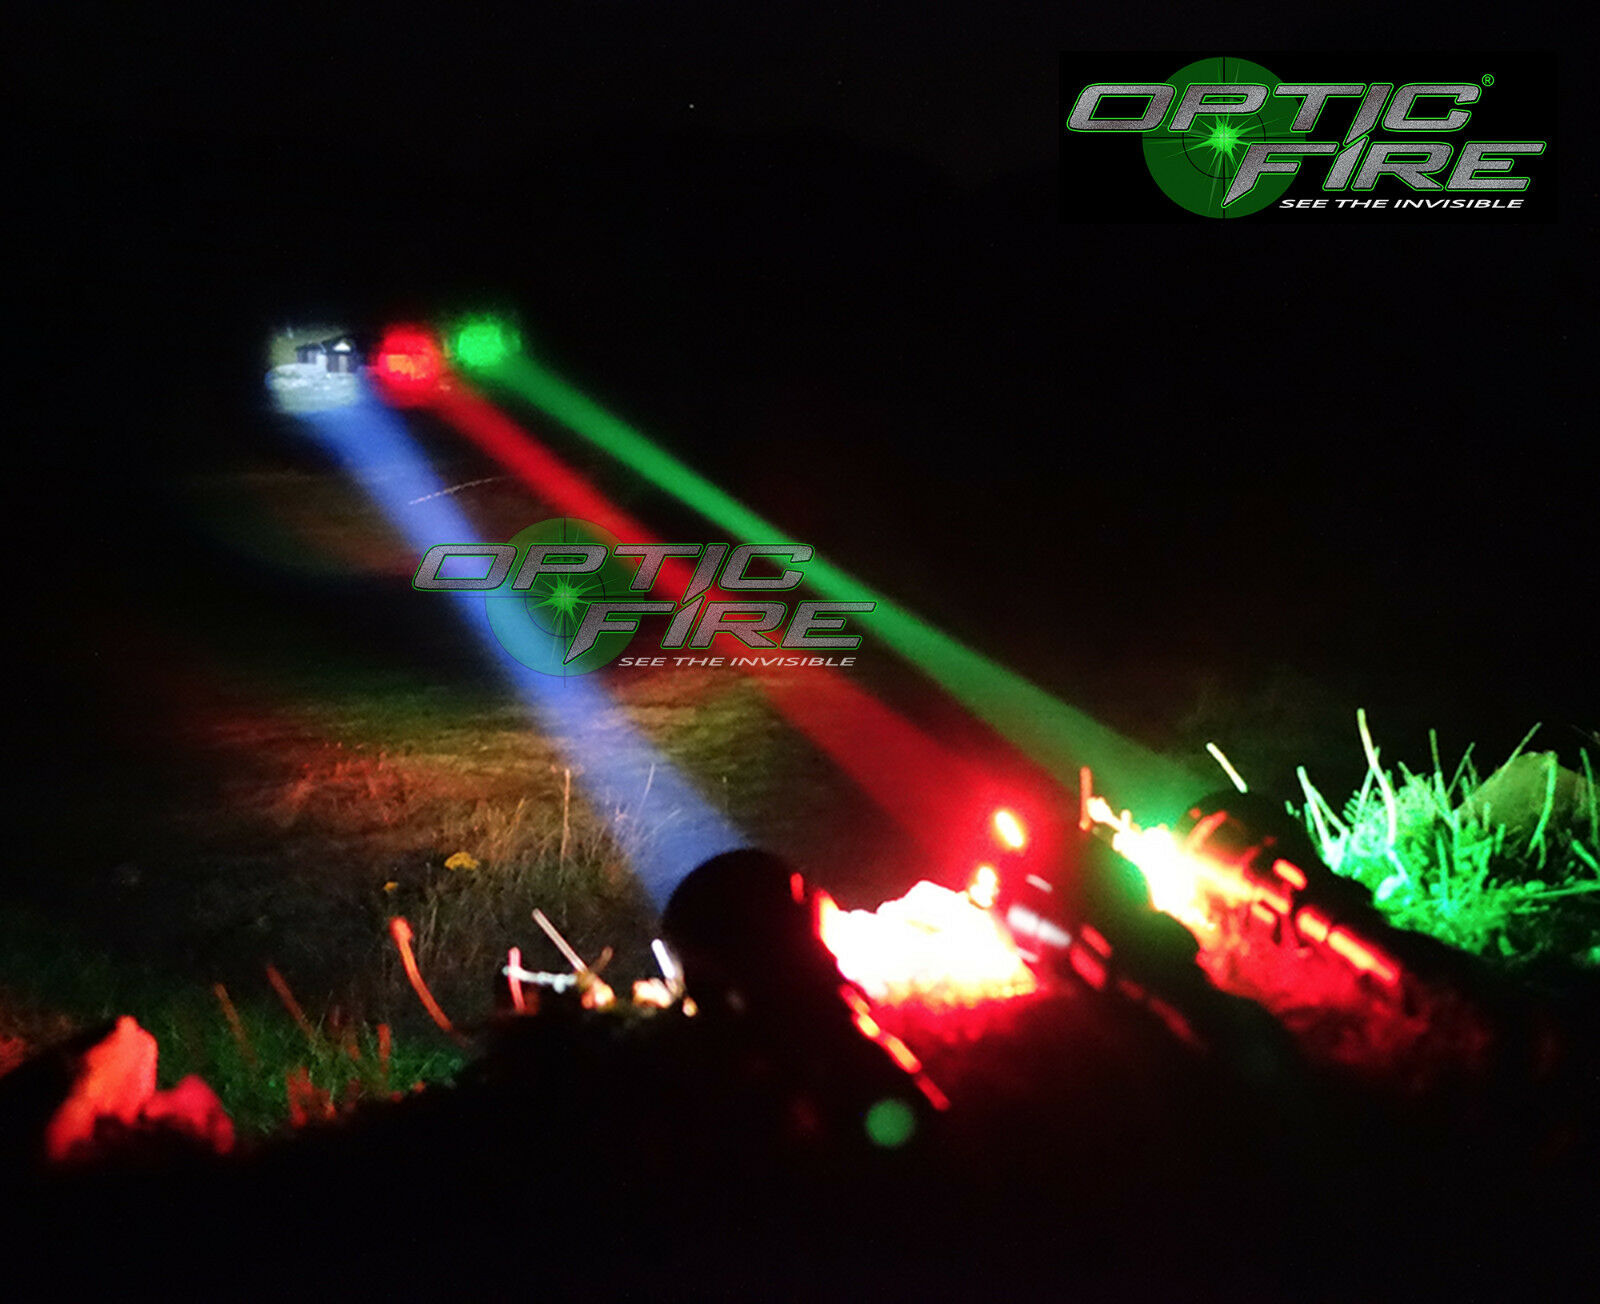 Opticfire® TX-67 TX-67 Opticfire® T67 LED hunting light torch lamping lamp IR NV night vision 5ba802